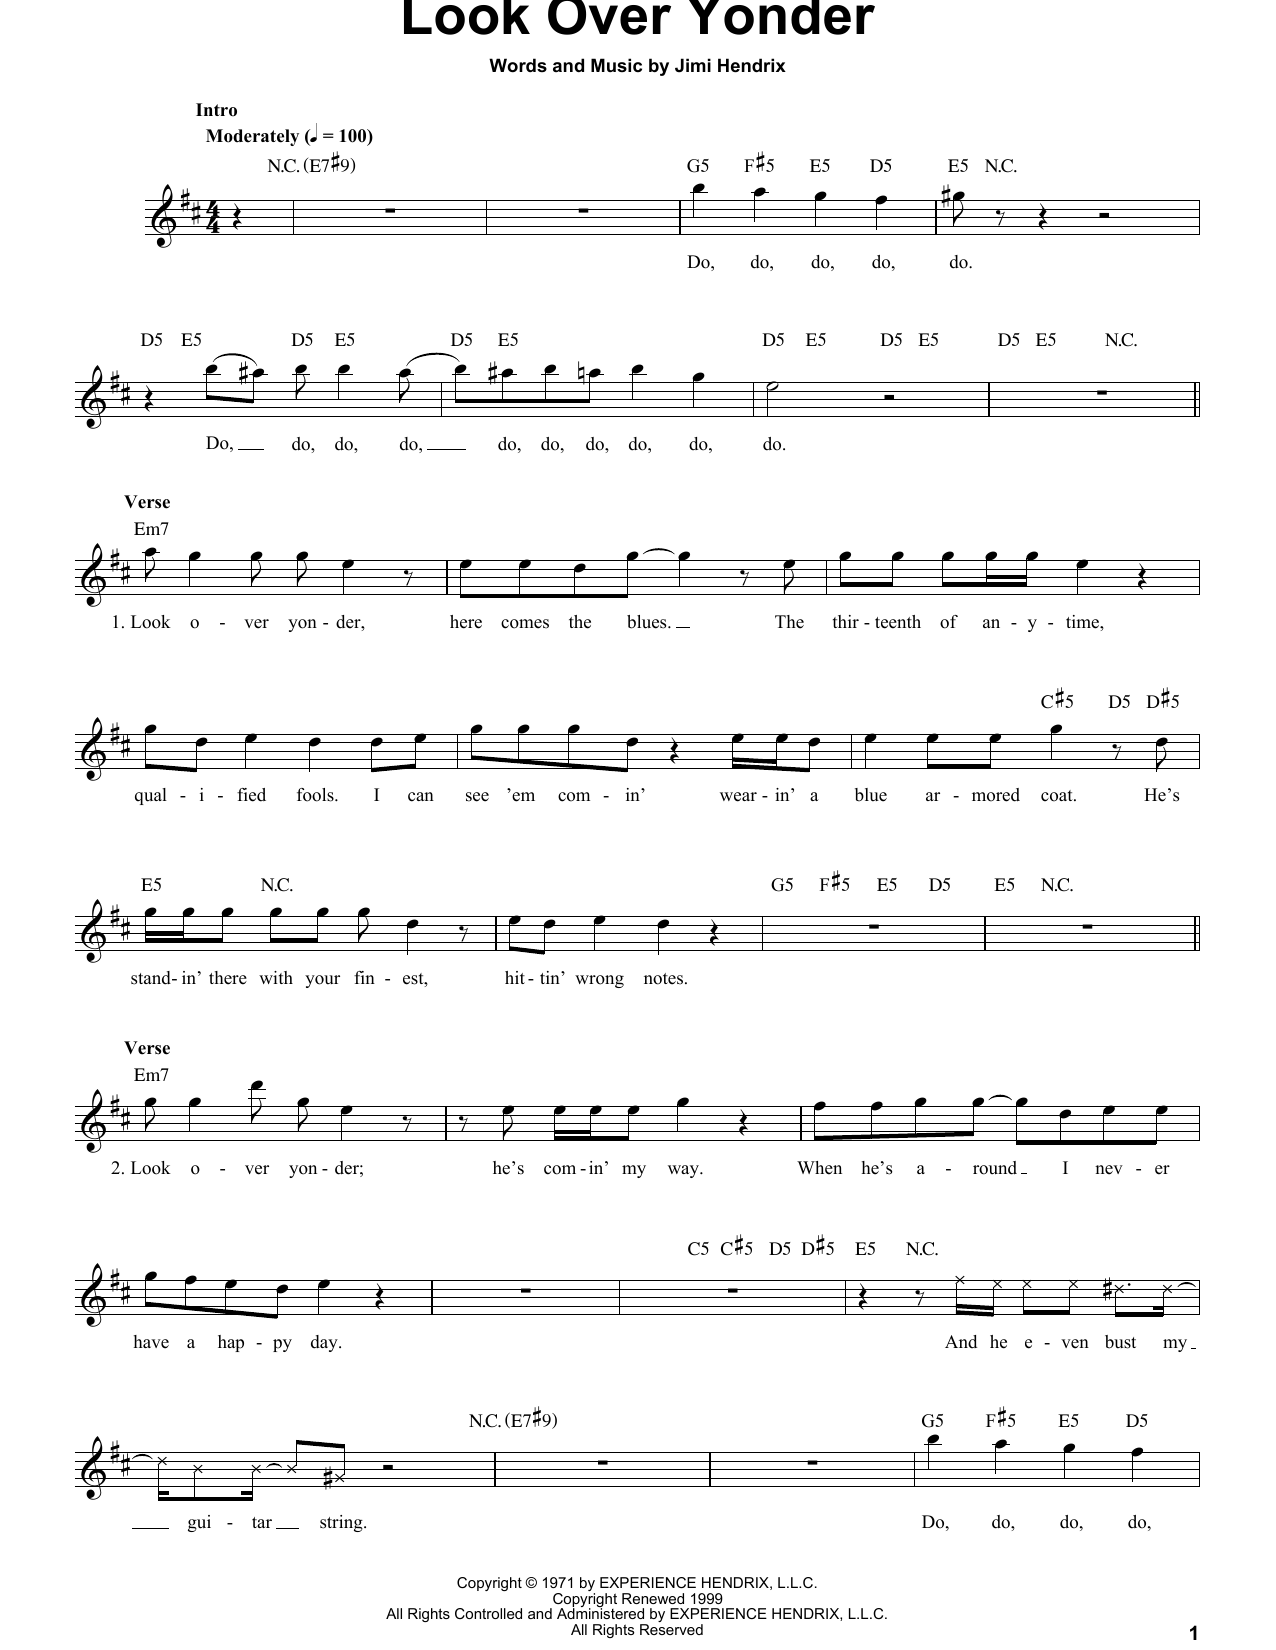 Look Over Yonder Sheet Music